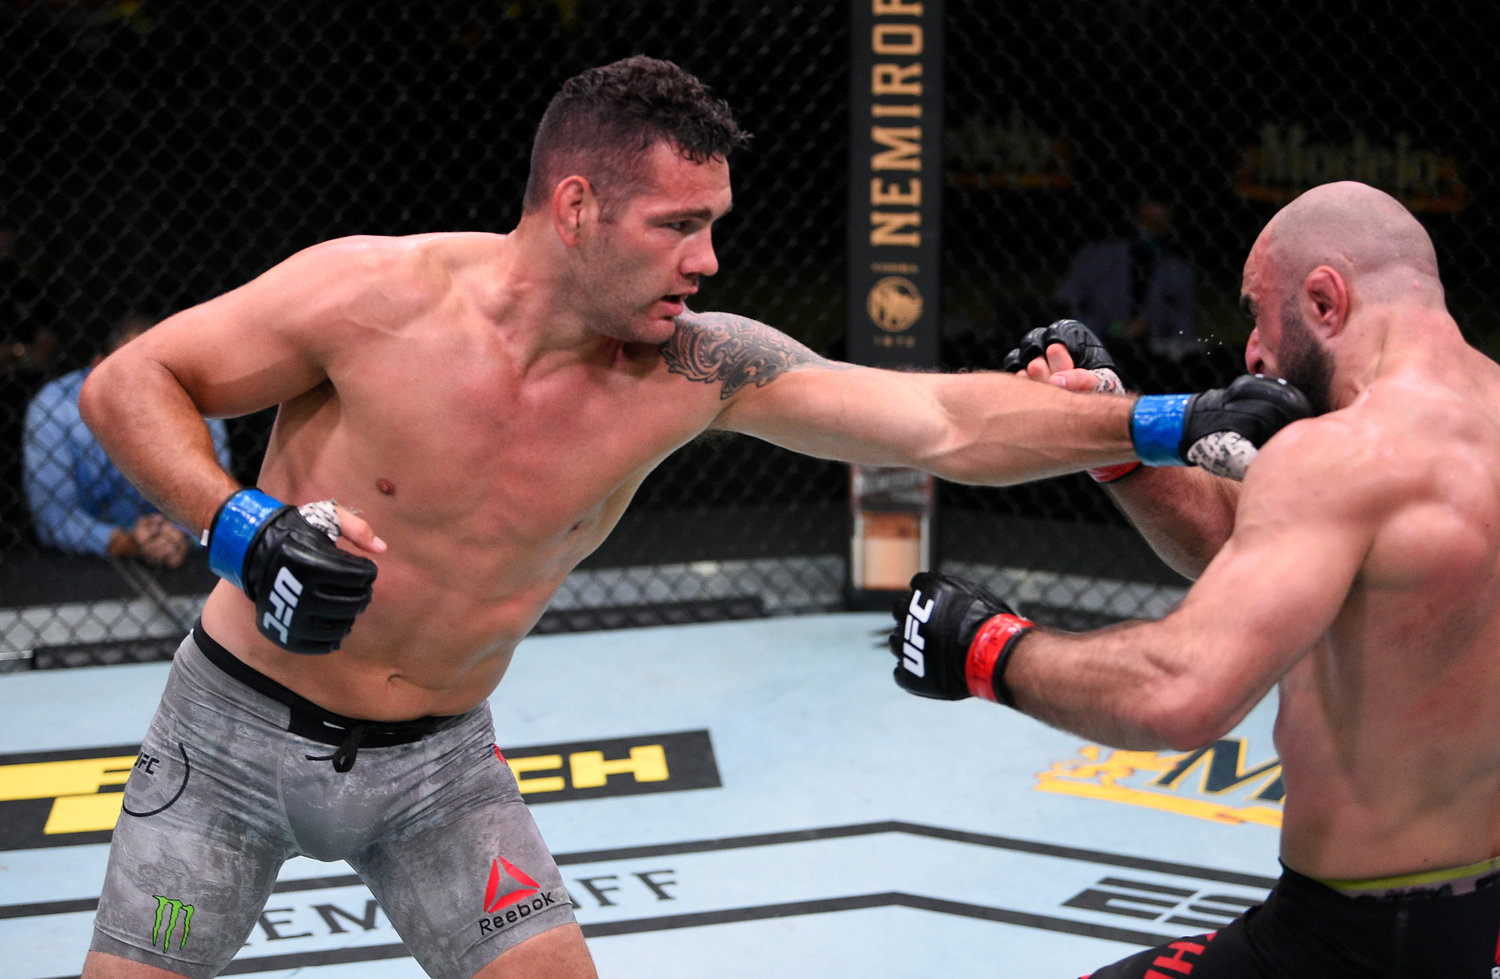 Chris Weidman, left, beat Omari Akhmedov their middleweight matchup during the UFC Fight Night event last Saturday in Las Vegas.